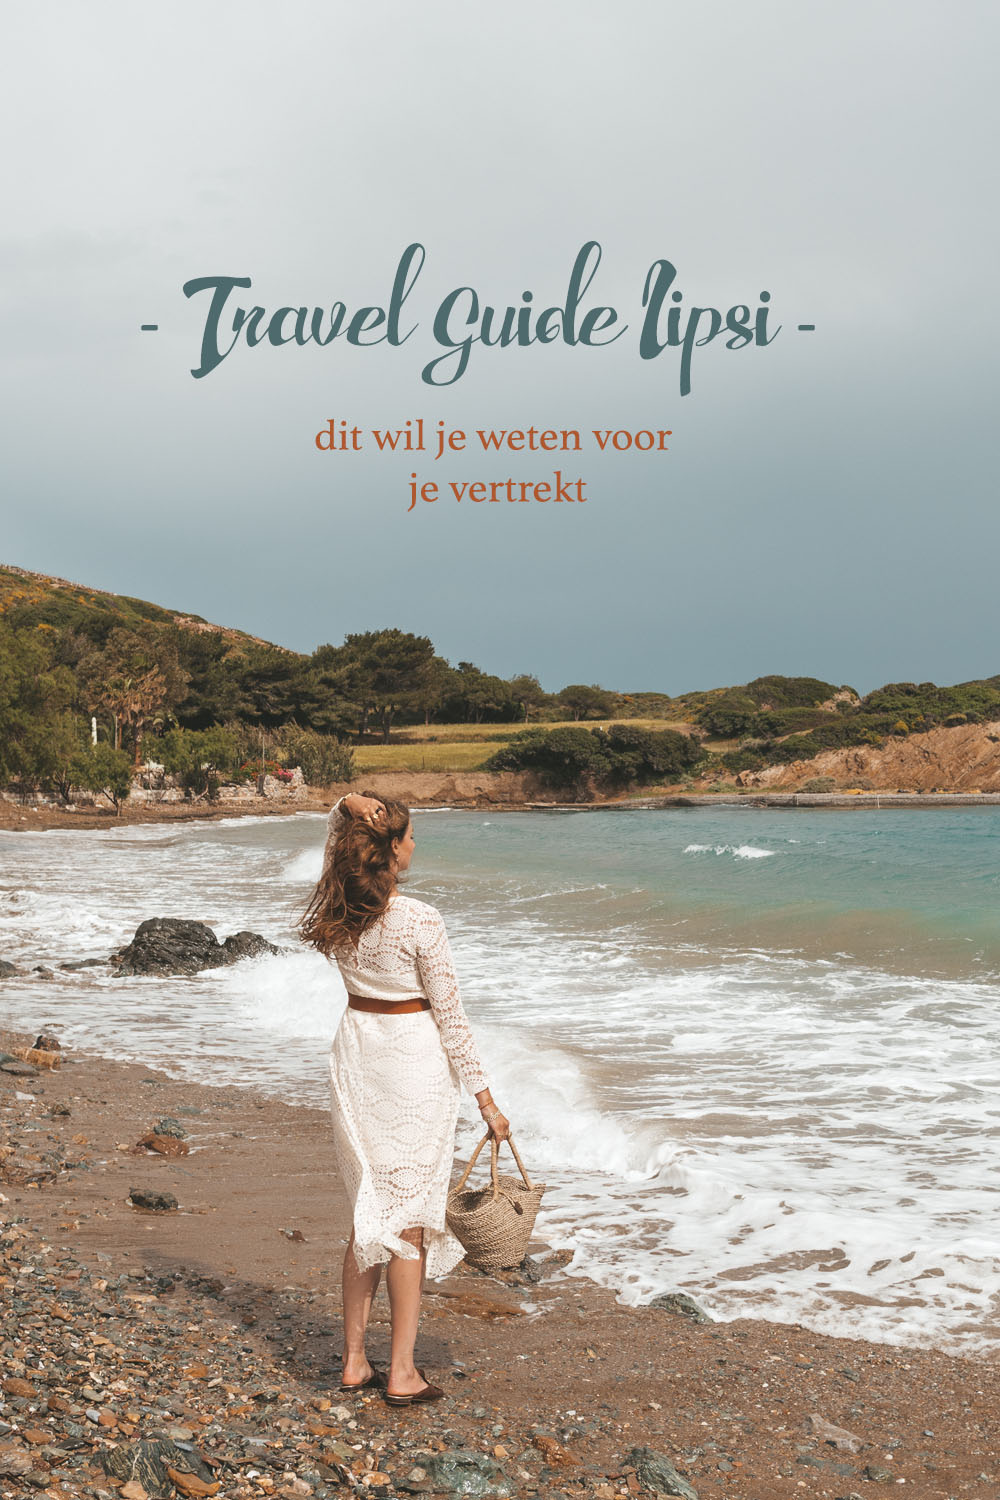 Travel guide Lipsi Griekenland